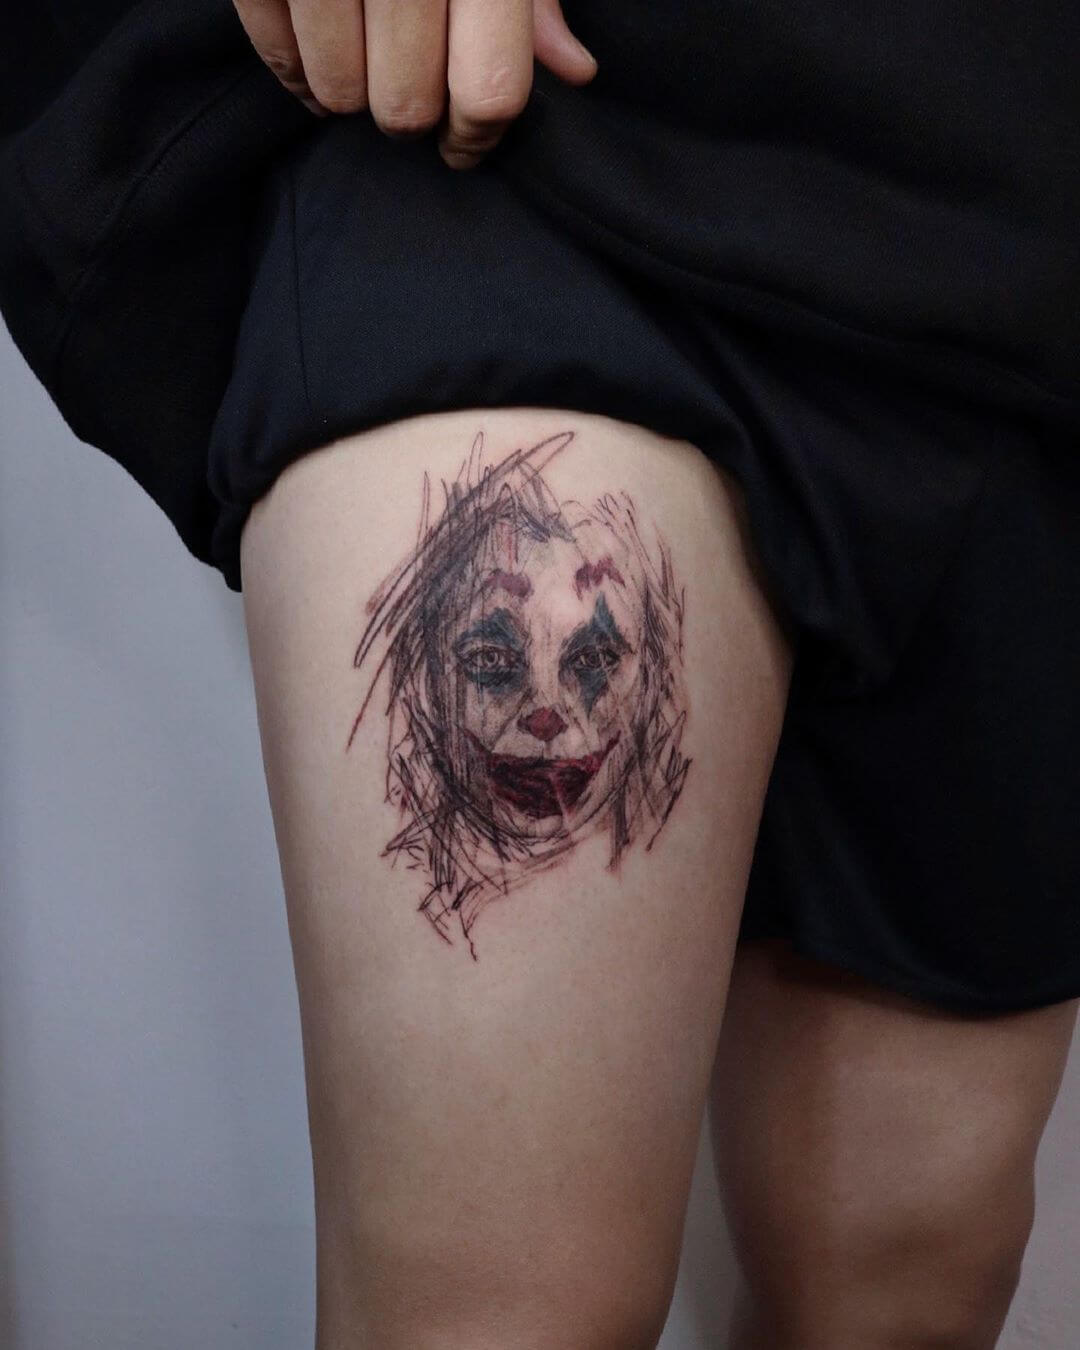 Sketchy tattoo portrait from The Joker